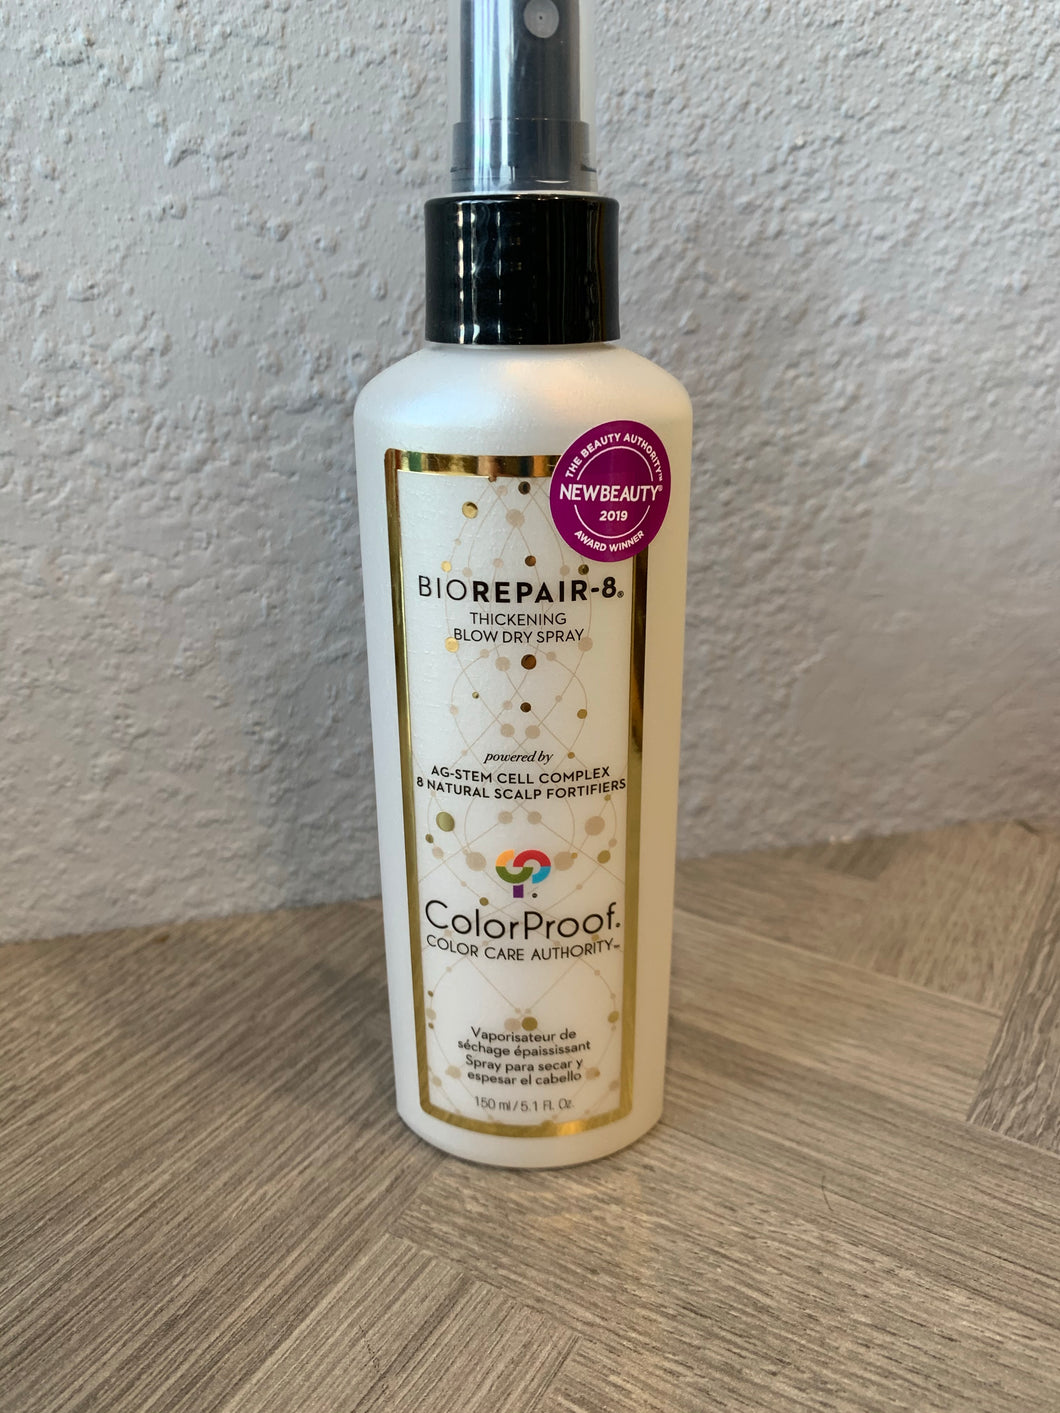 Biorepair-8 Thickening Blow Dry Spray